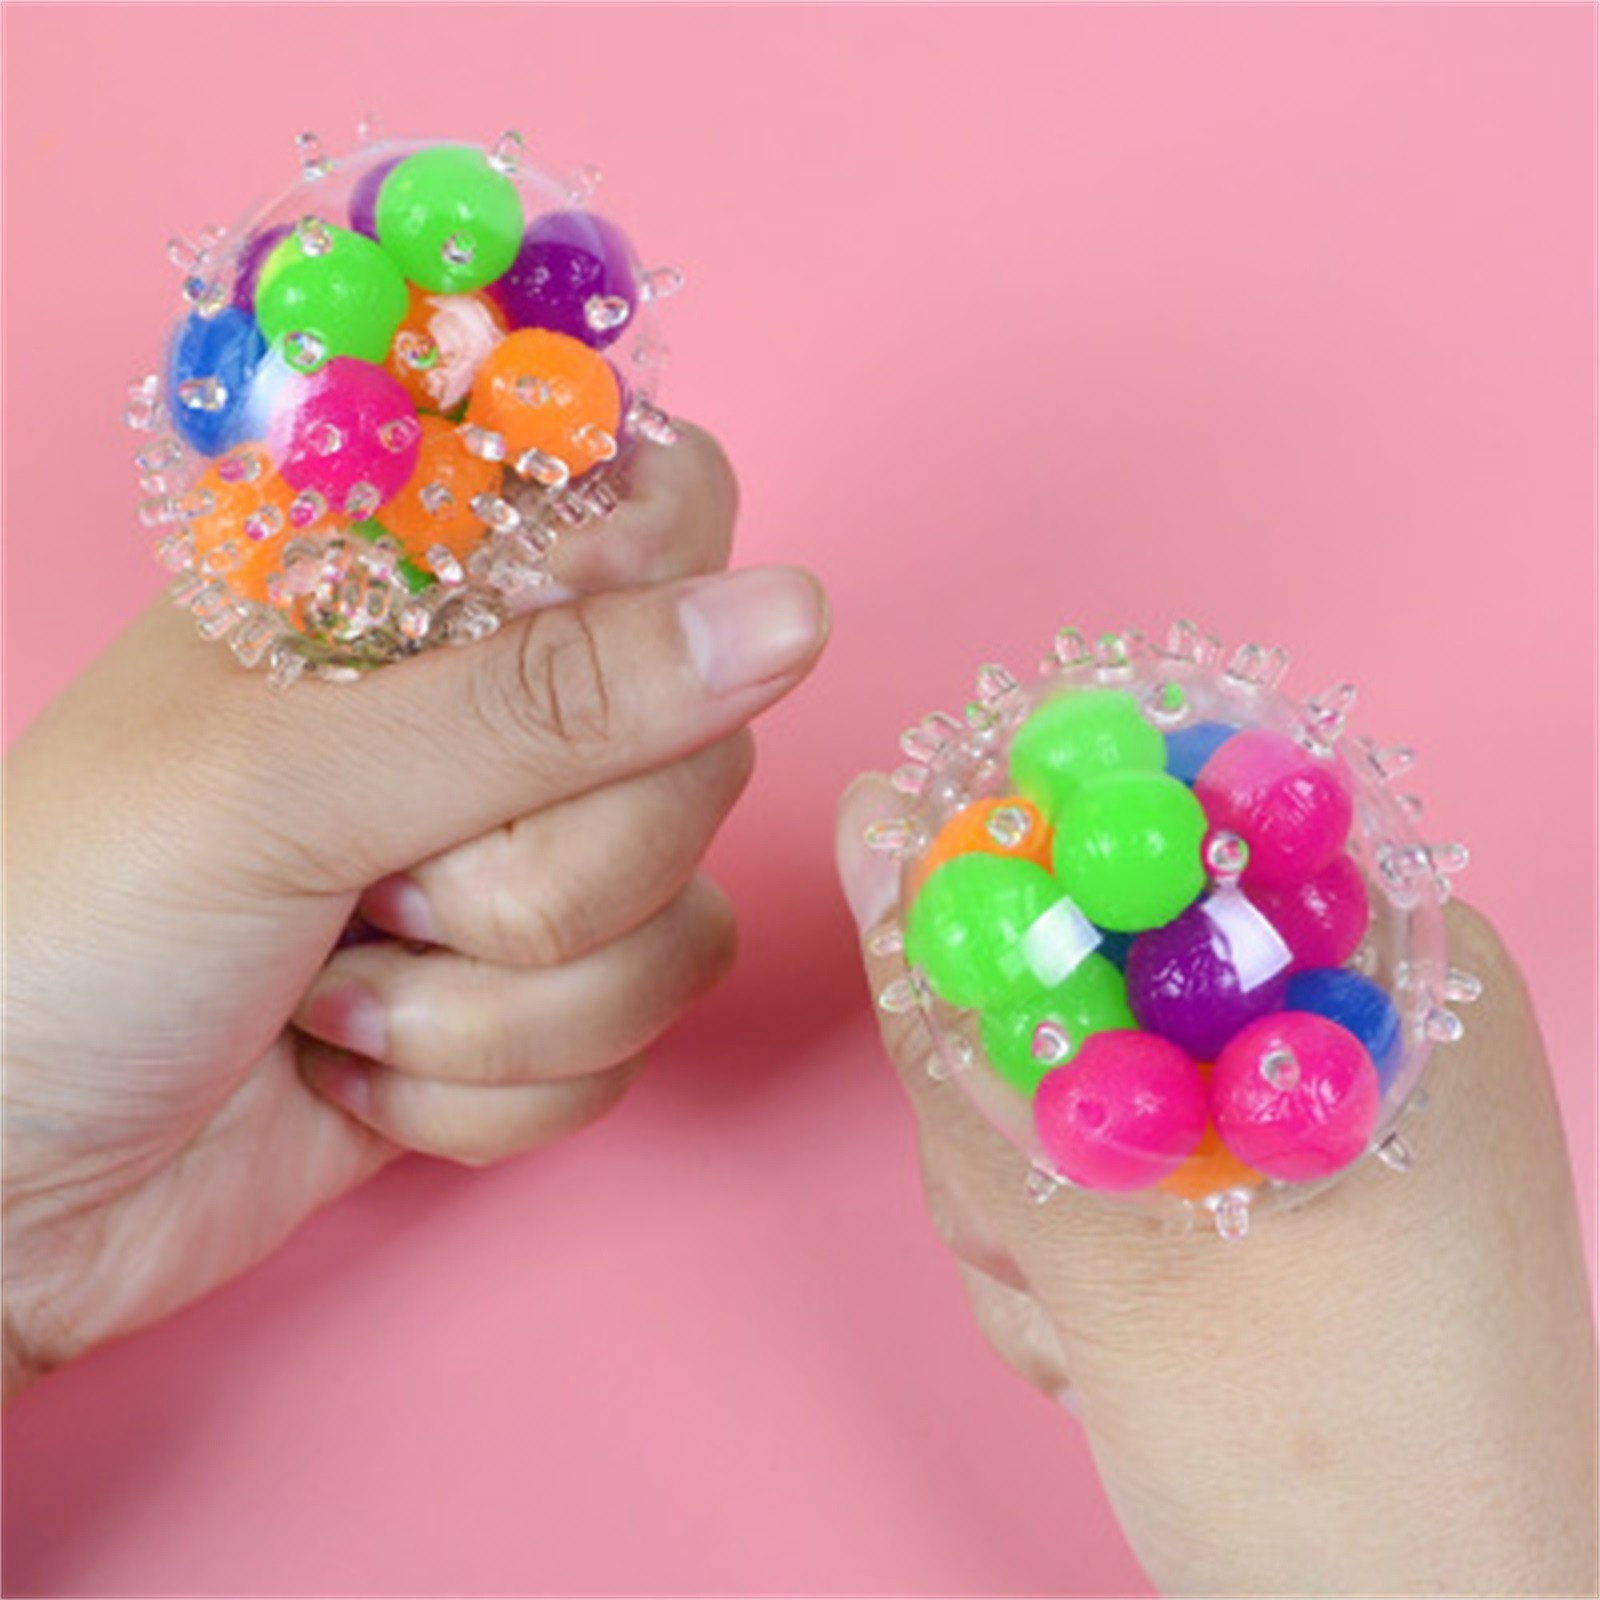 Toy Pressure-Toy Stress Adults for Kids Funny 10PCS Rainbow-Ball Spongy Squeezable Colorful img4